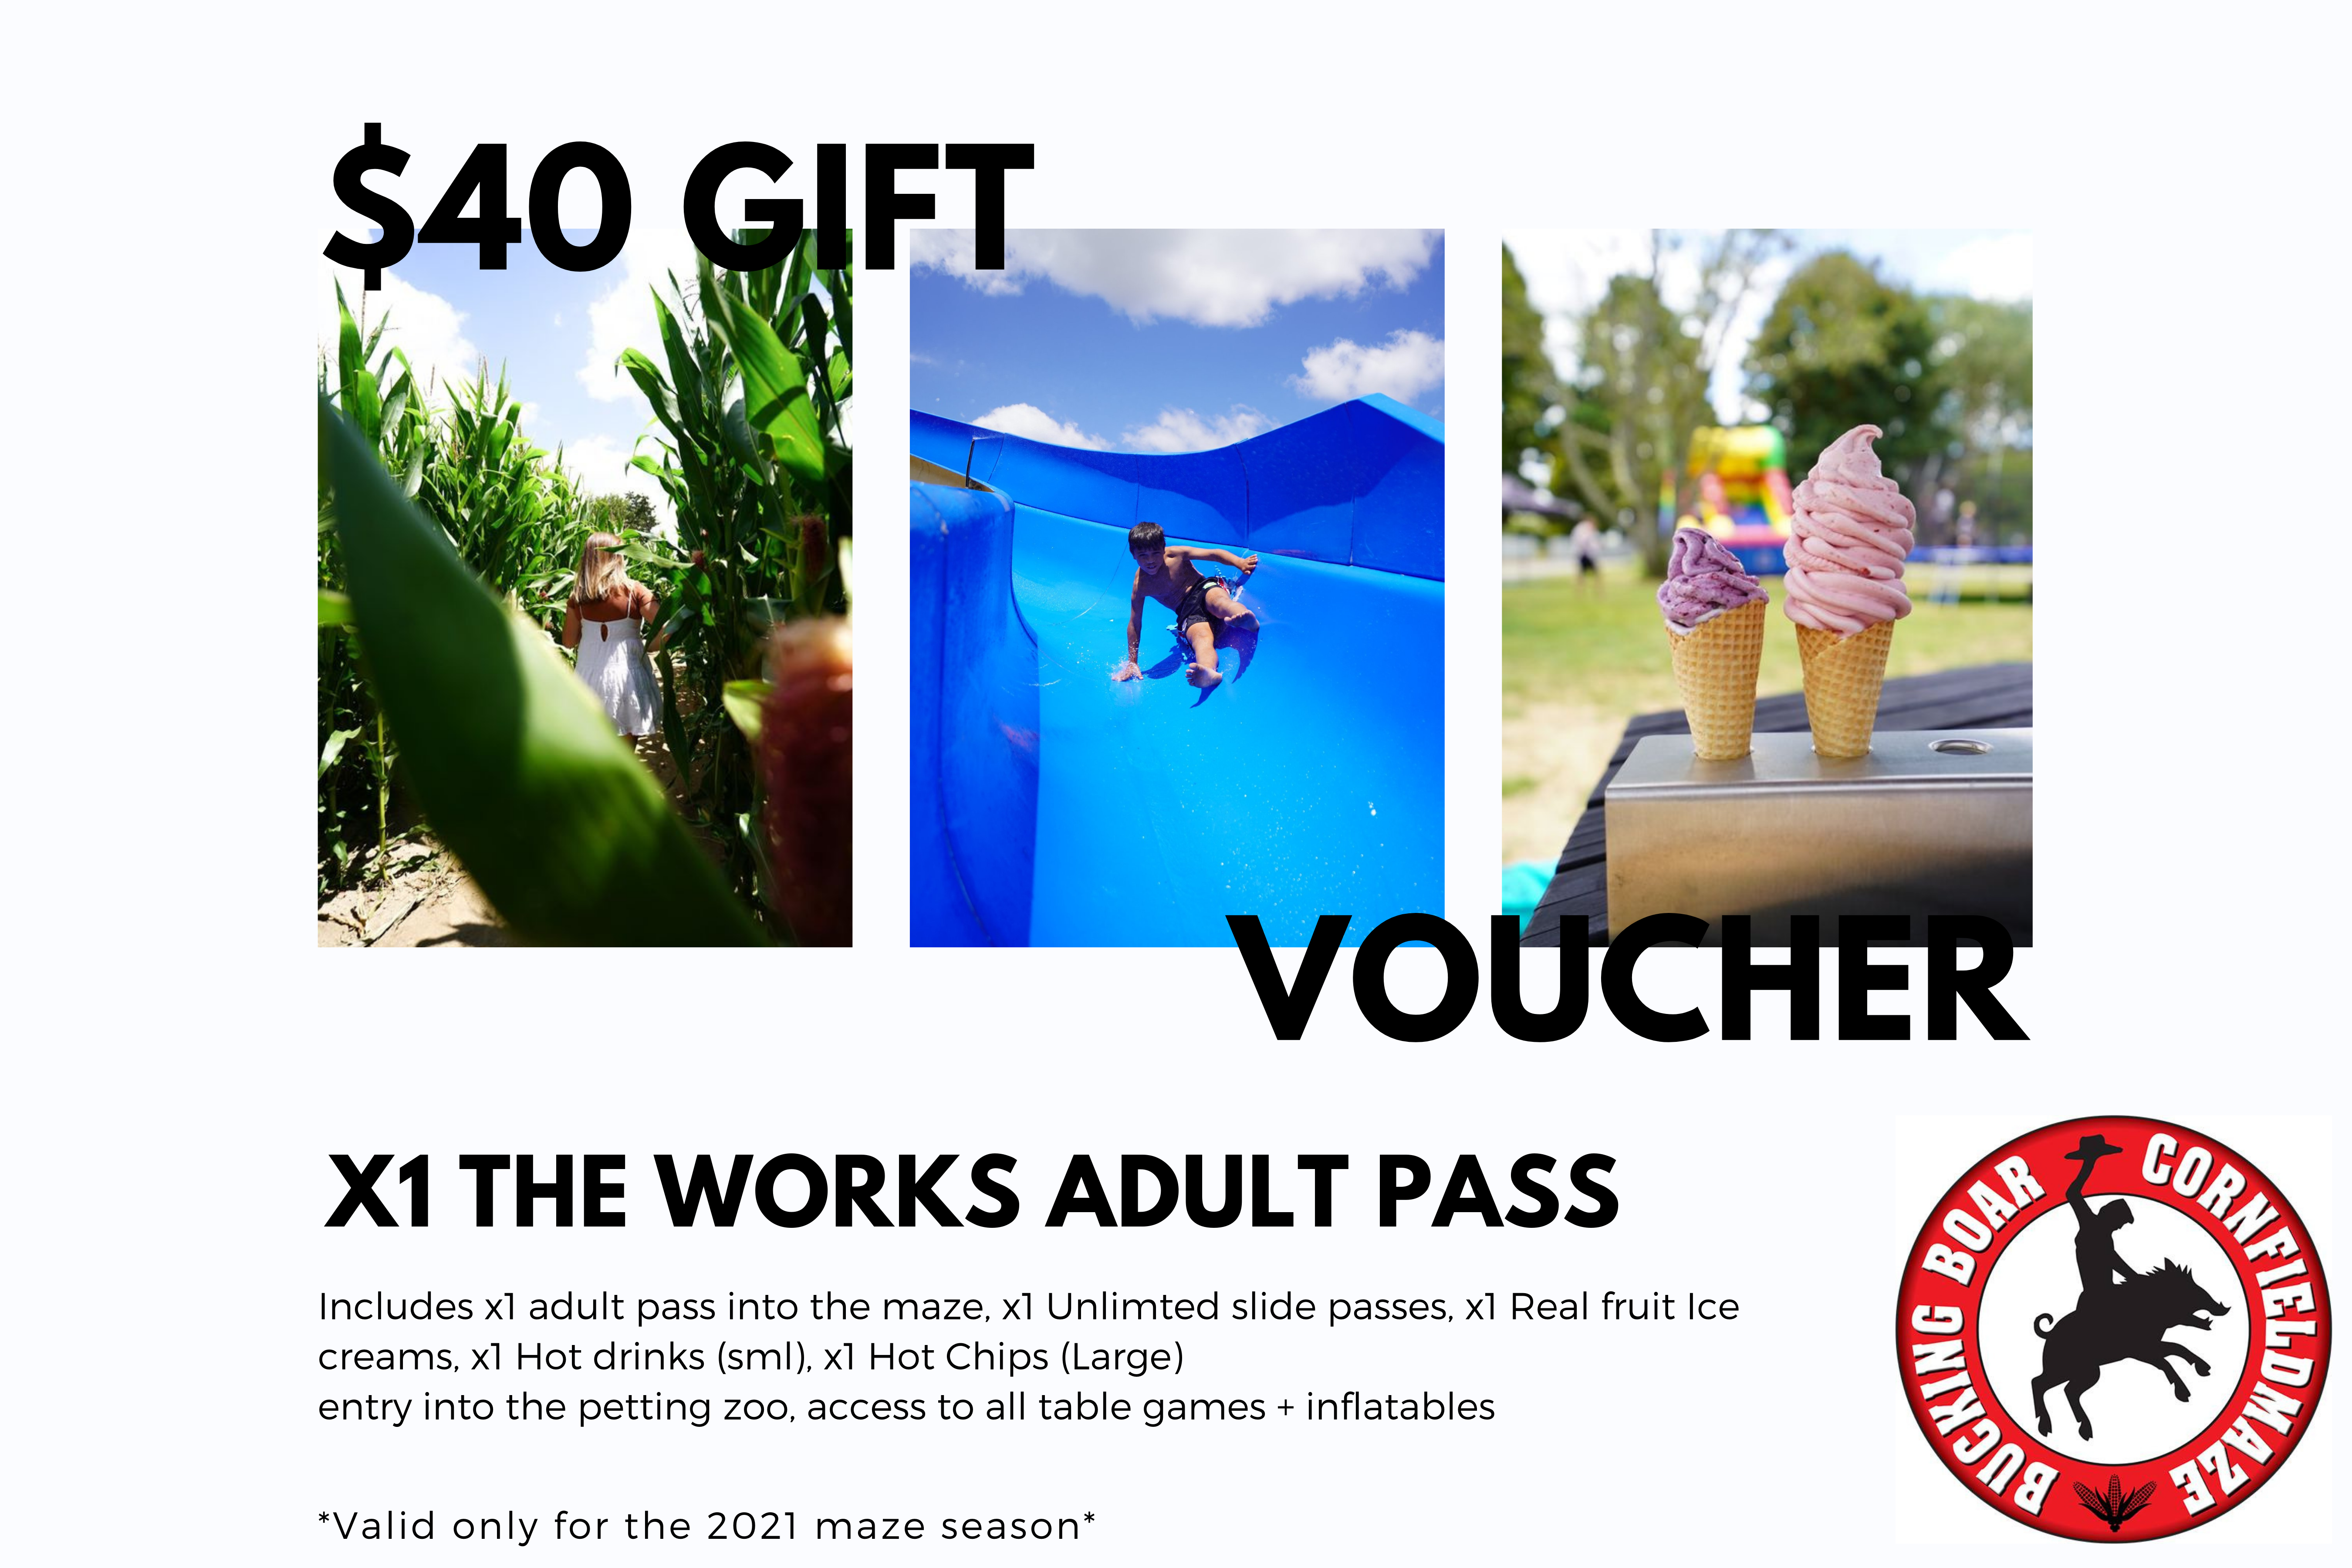 Voucher - The Works Adult Pass